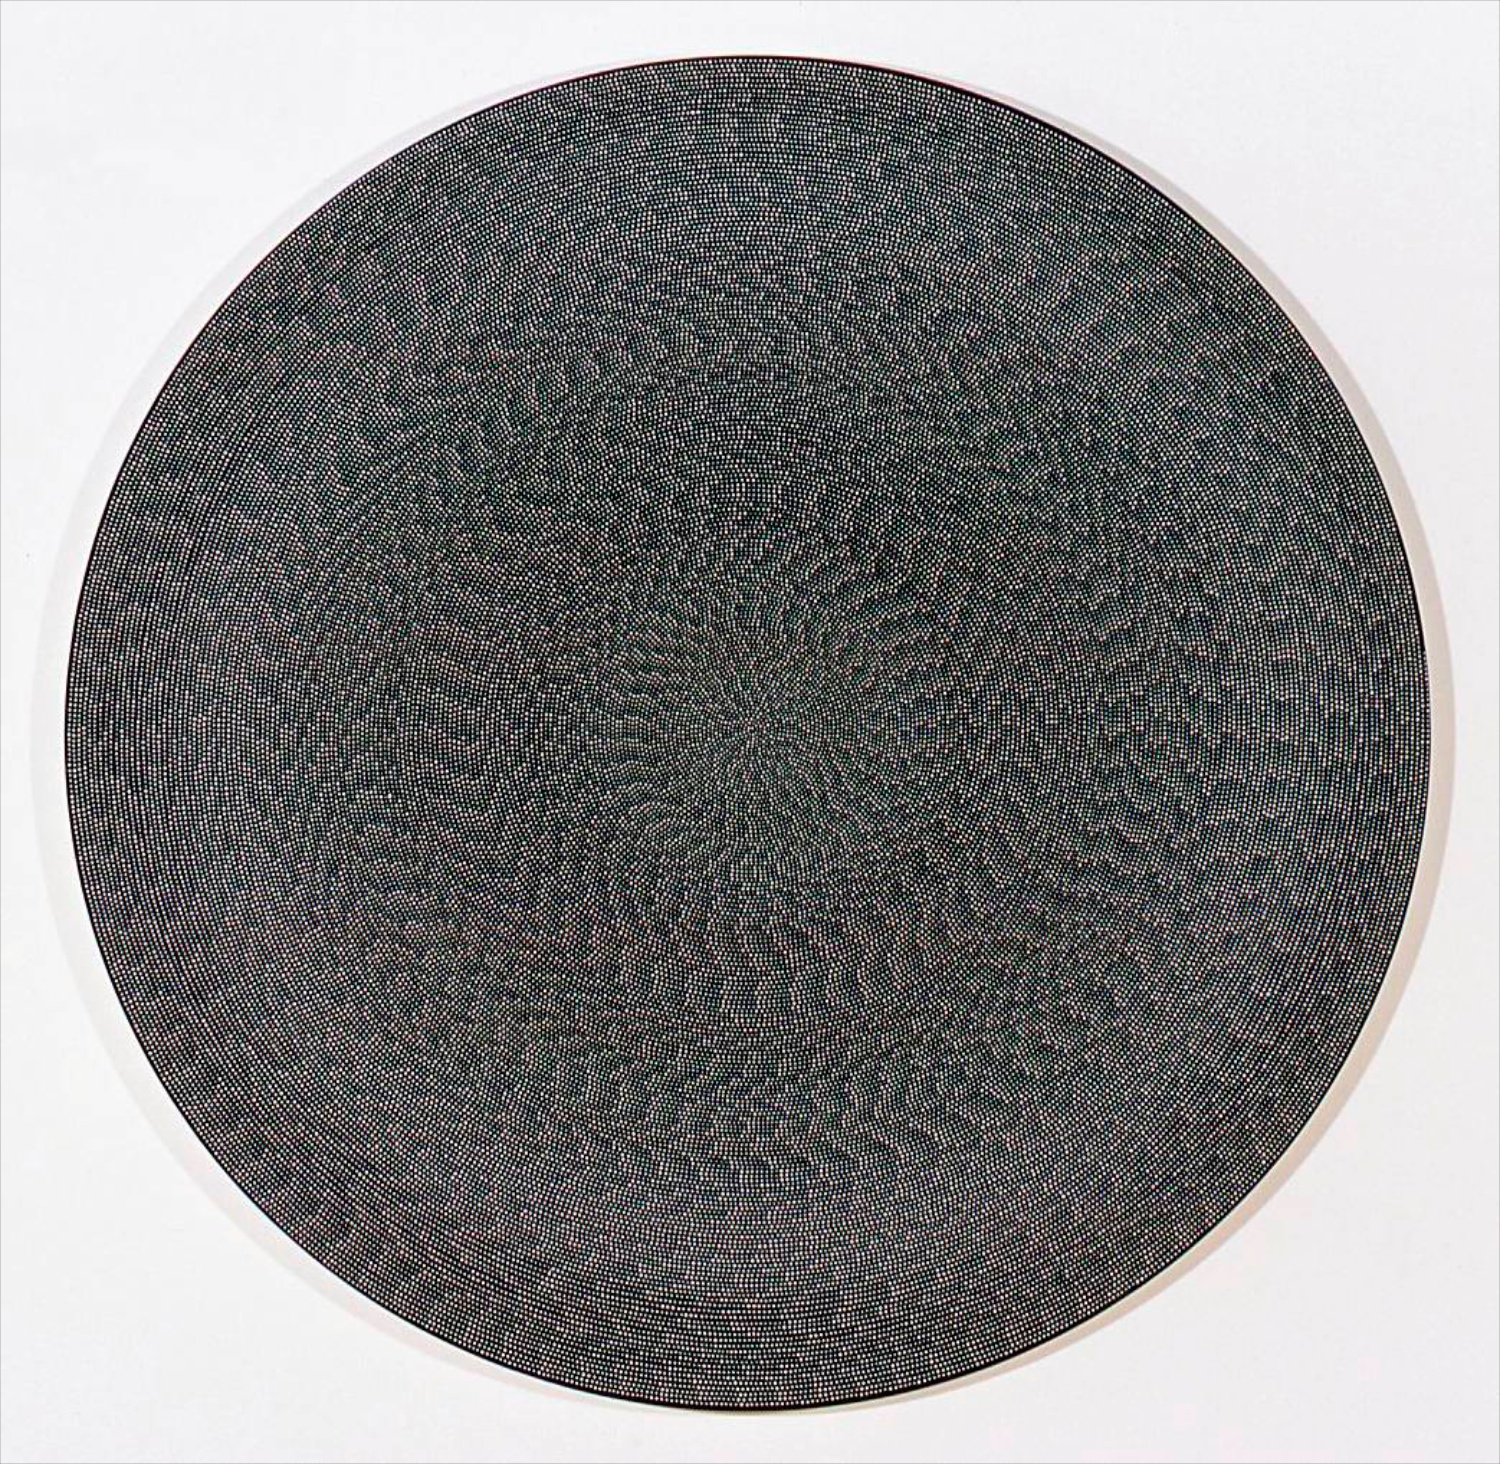 "Michelle Grabner Untitled 2006 Flashe on canvas 60"" diameter MGrab018"